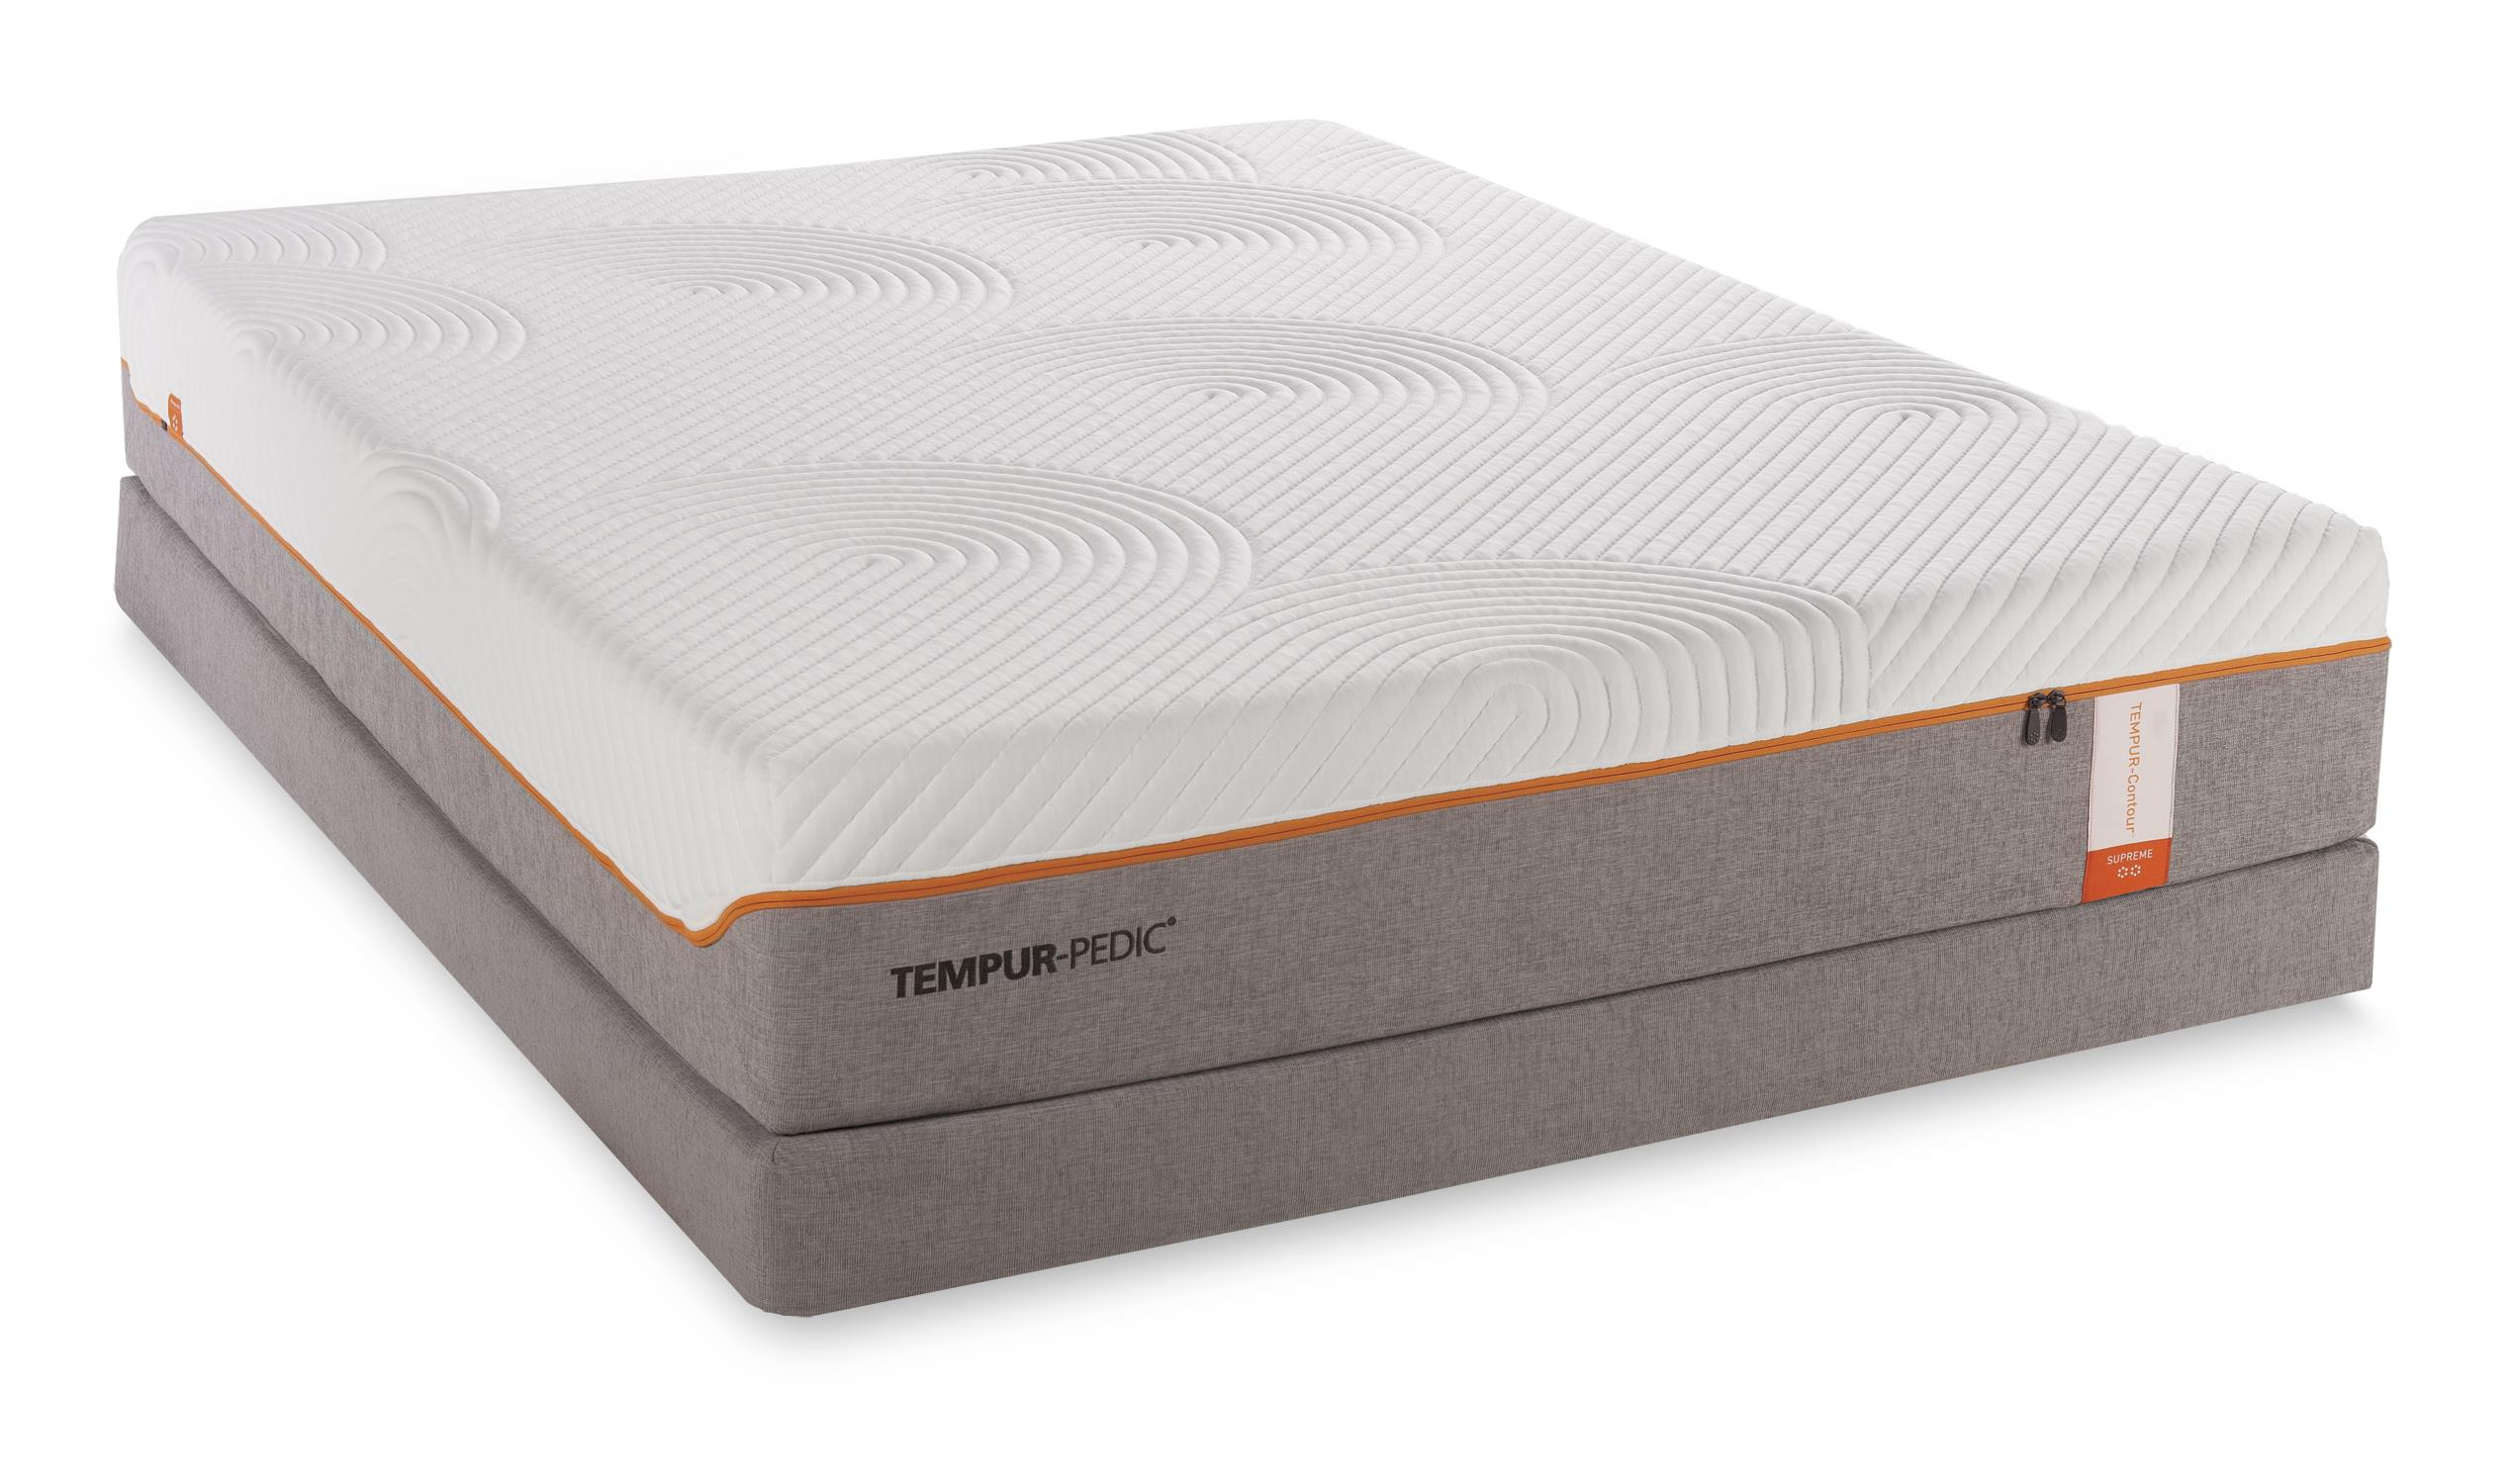 Tempur-Pedic® TEMPUR-Contour Supreme Queen Firm Mattress Set - Item Number: 10256150+21510150